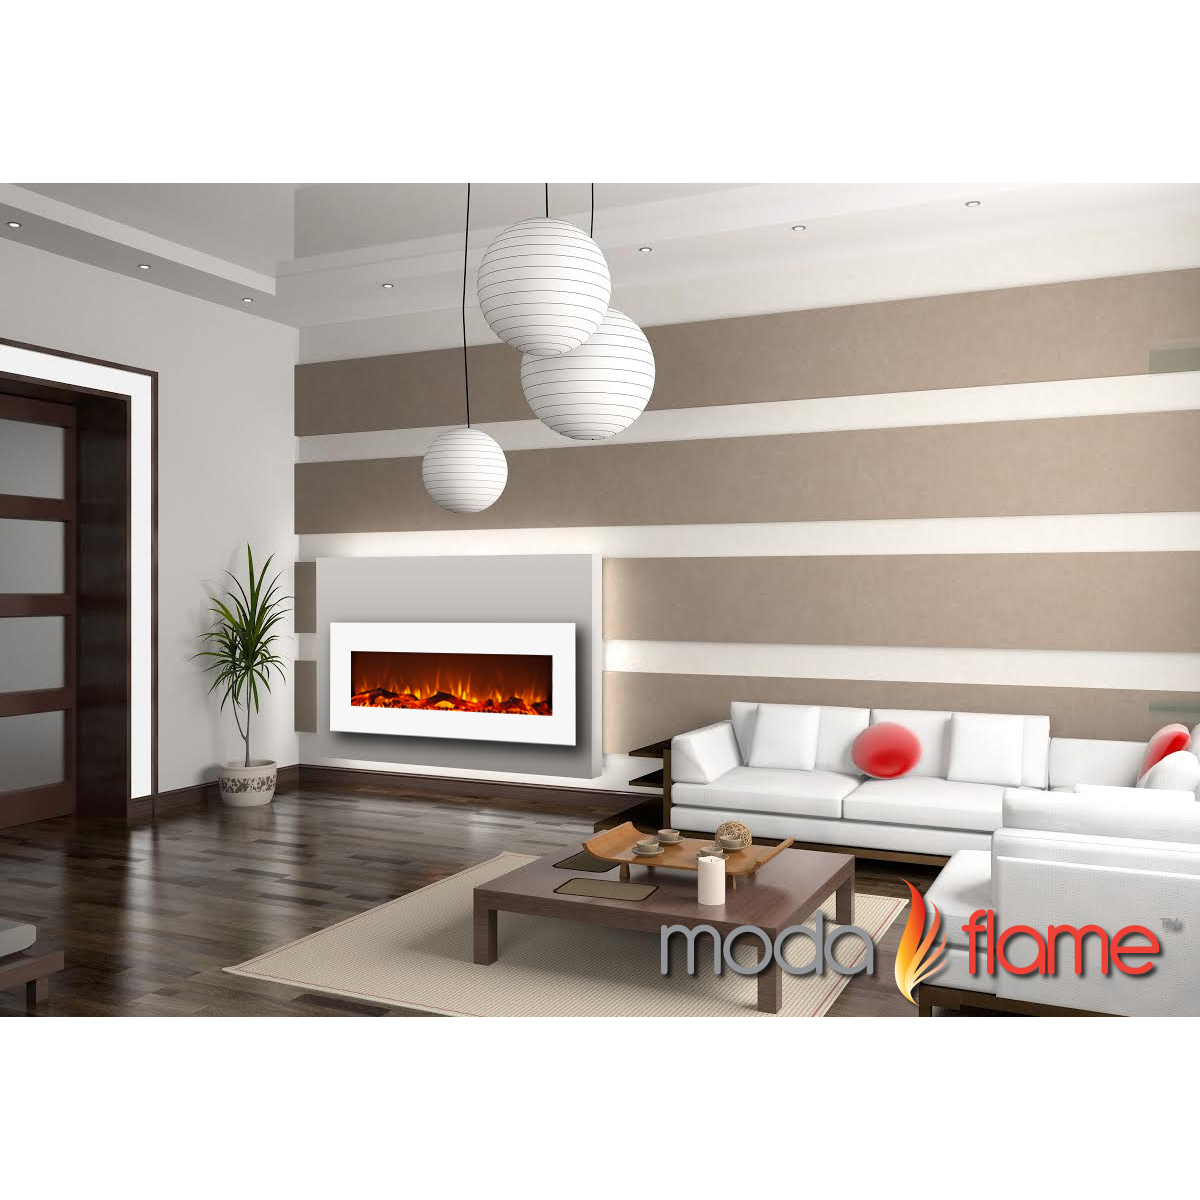 Moda Flame Houston 50 Inch Electric Wall Mounted Fireplace White